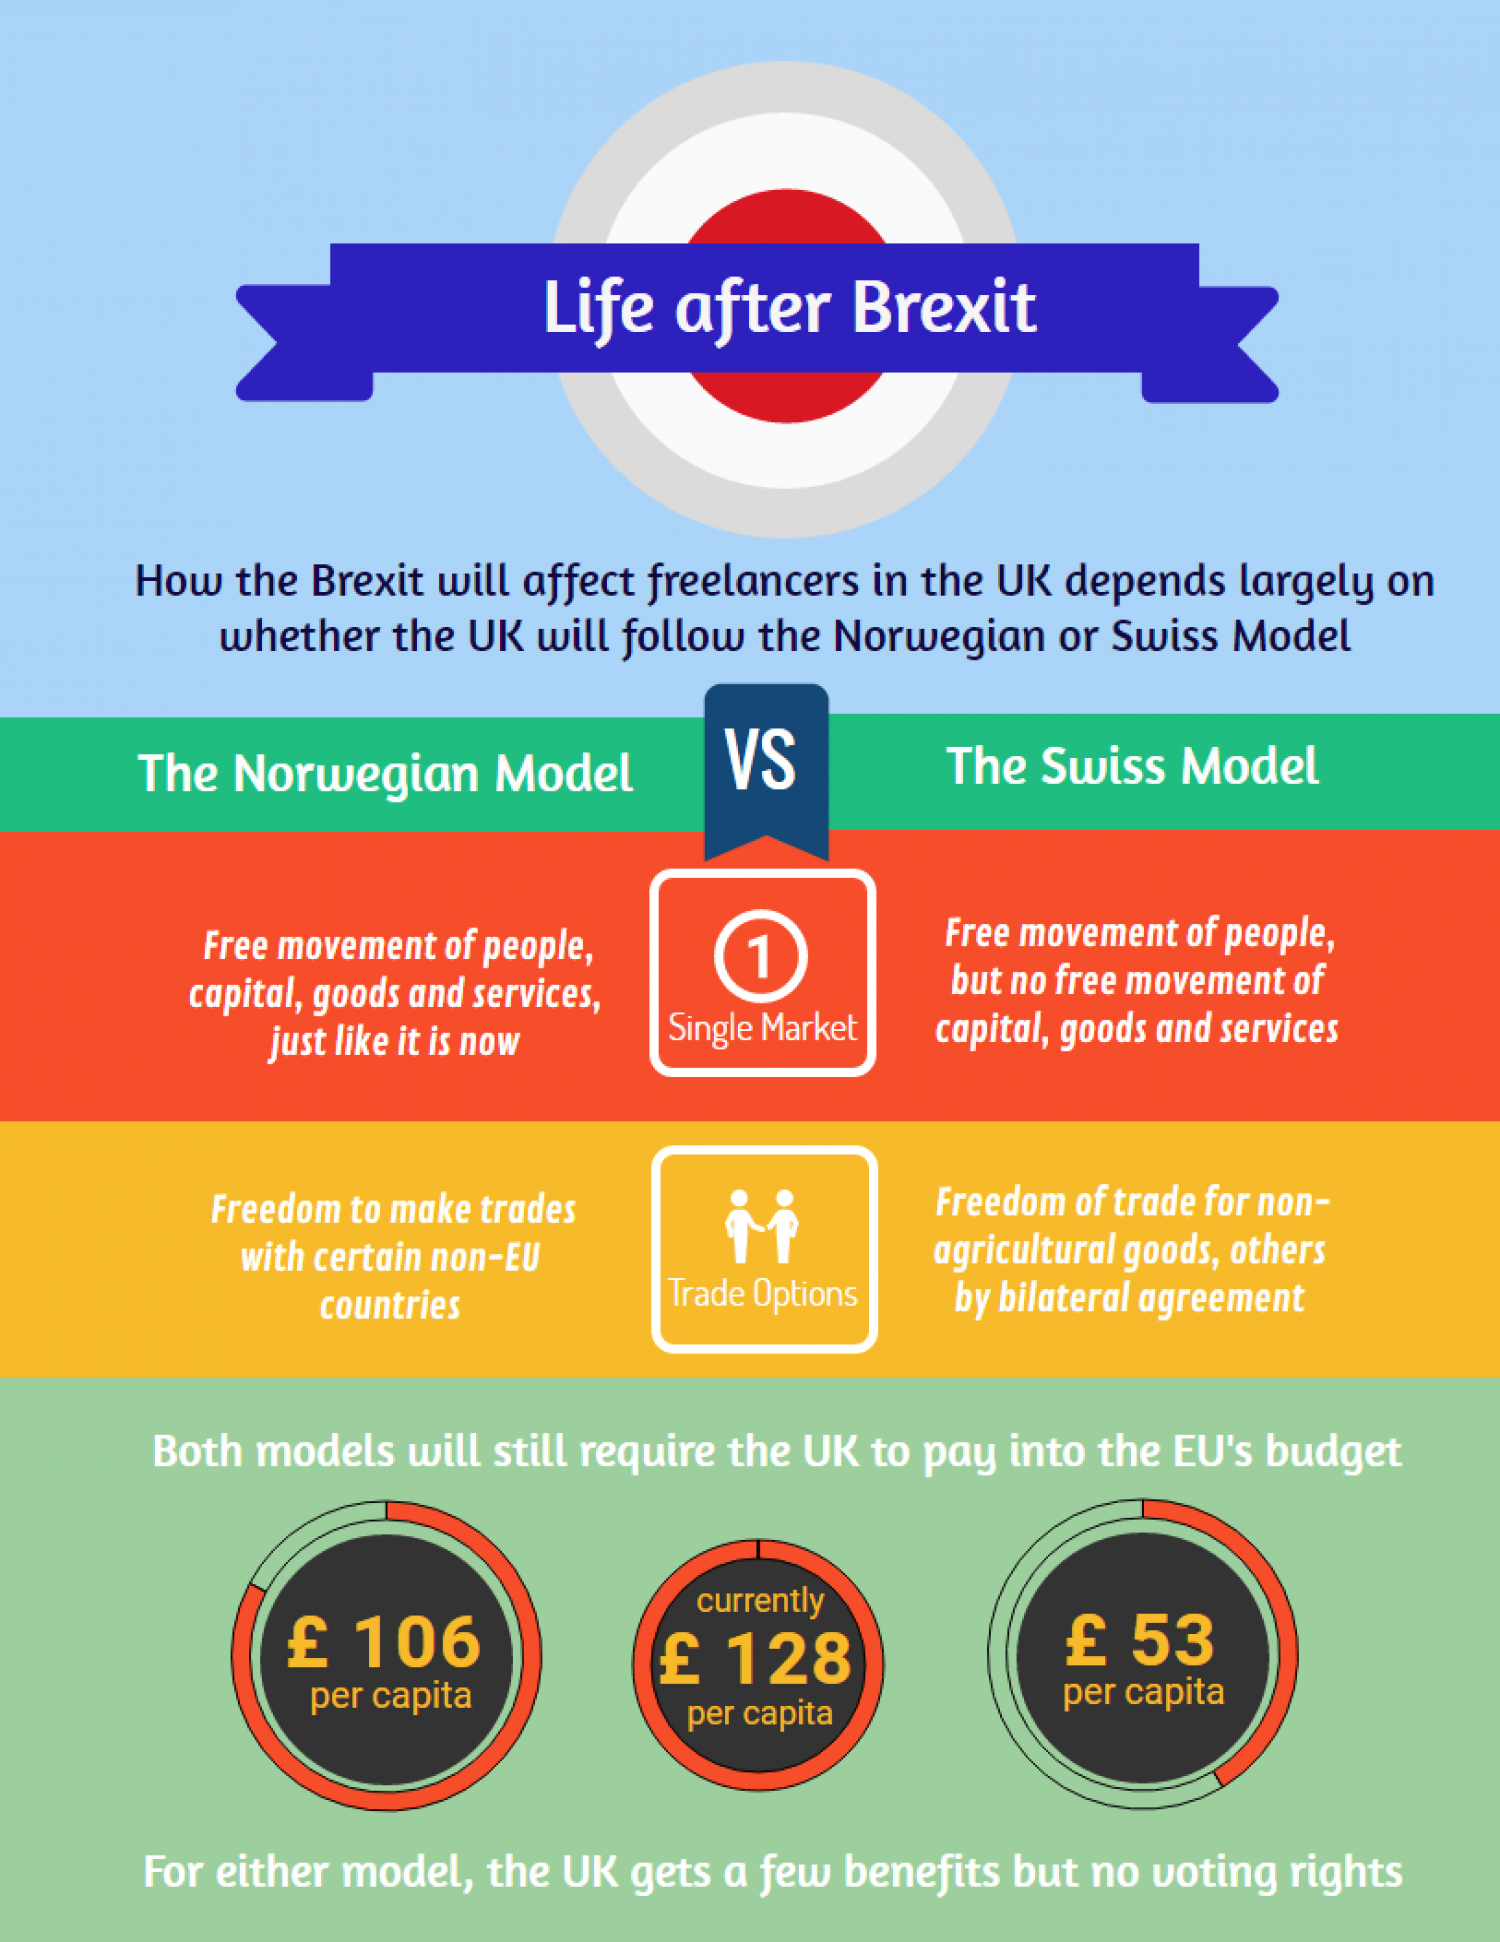 Life after Brexit Infographic